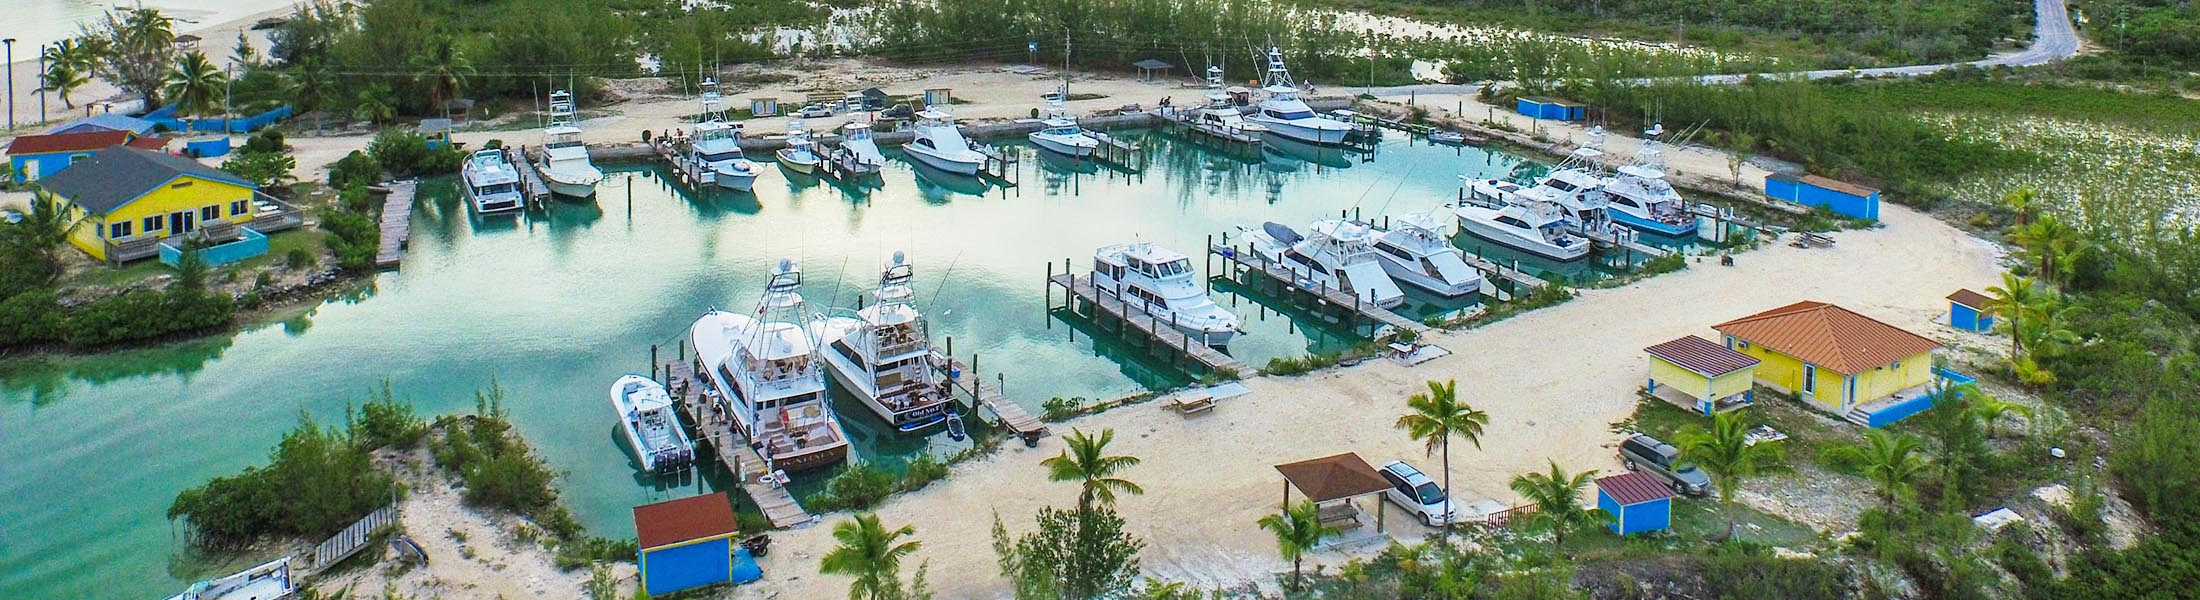 Cat Island, Bahamas | Hawk's Nest Resort & Marina